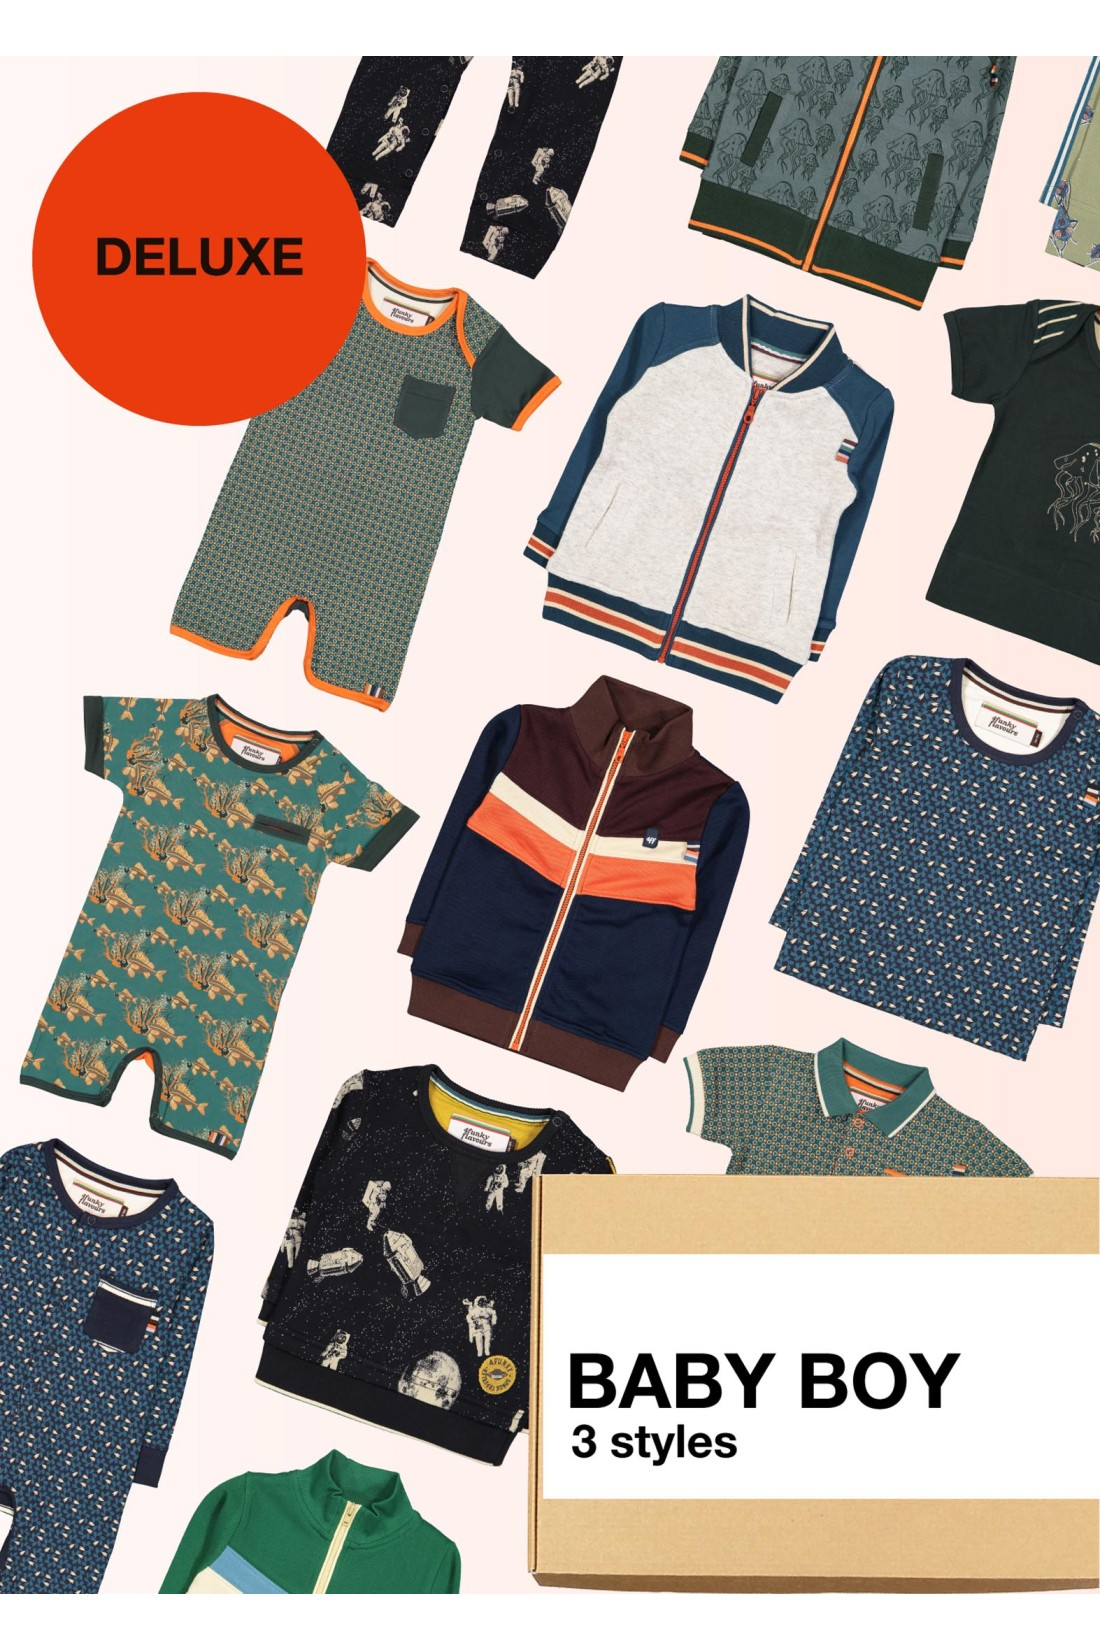 Surprise Box Baby Boys Deluxe - 3 Styles Sweater/jacket, Romper, Top Long Sleeve